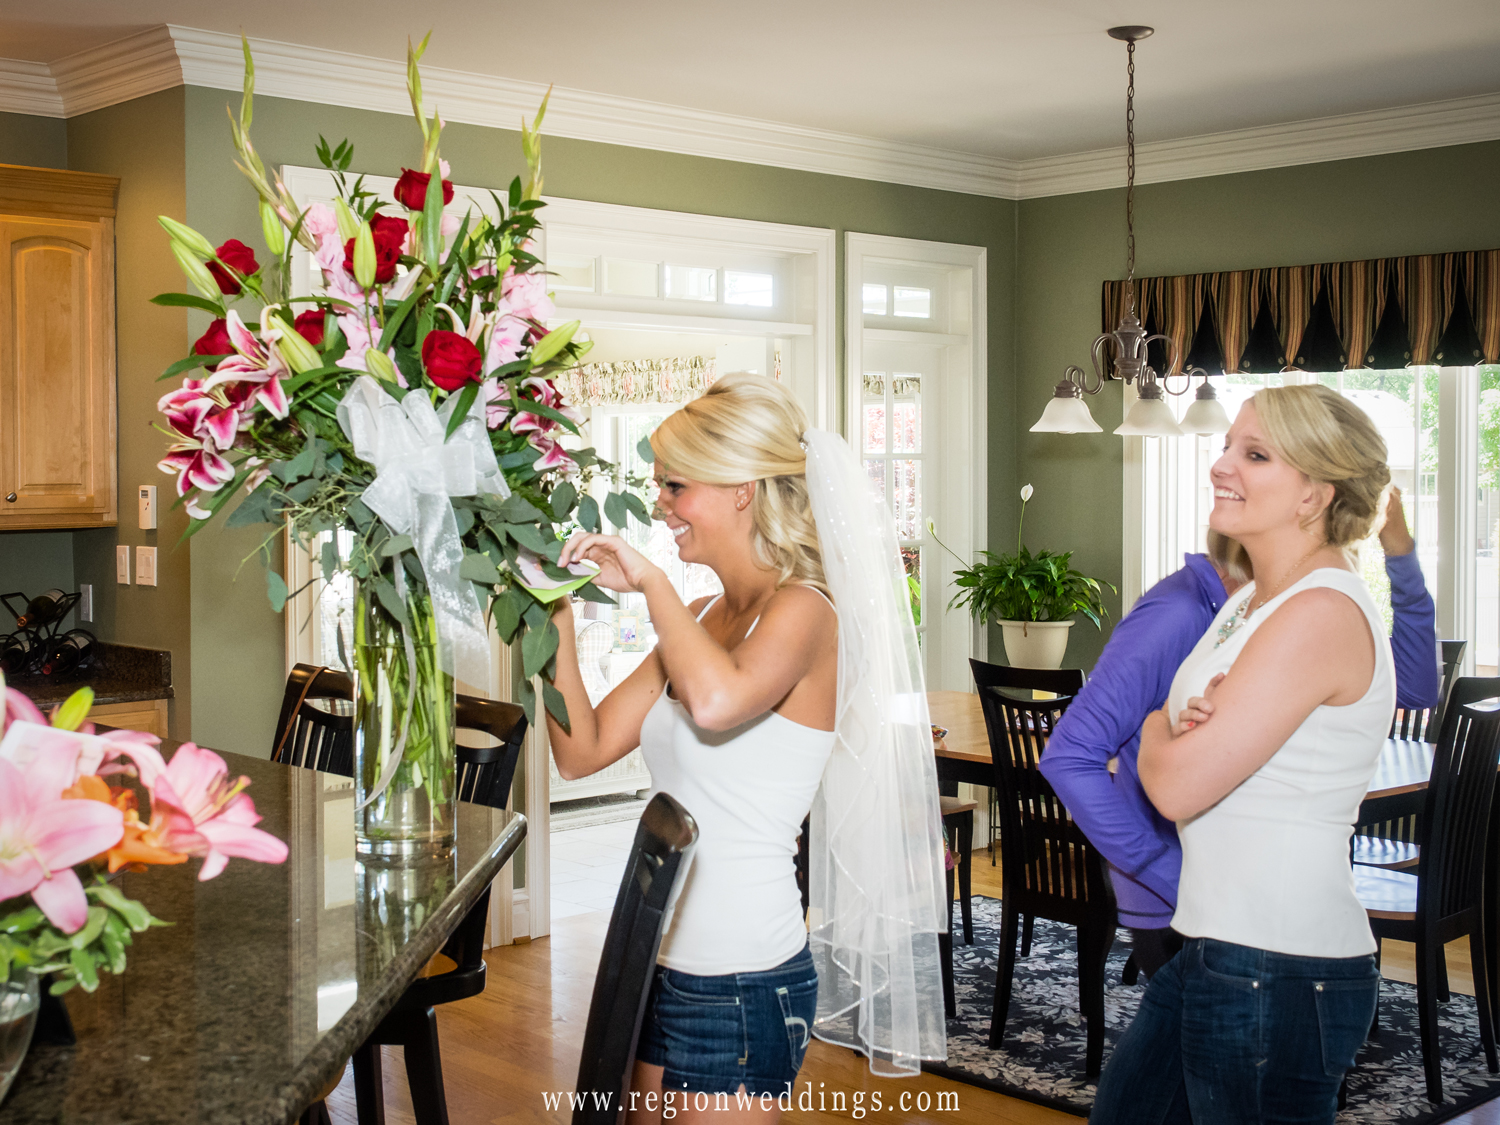 The bride receives flowers on her wedding day.